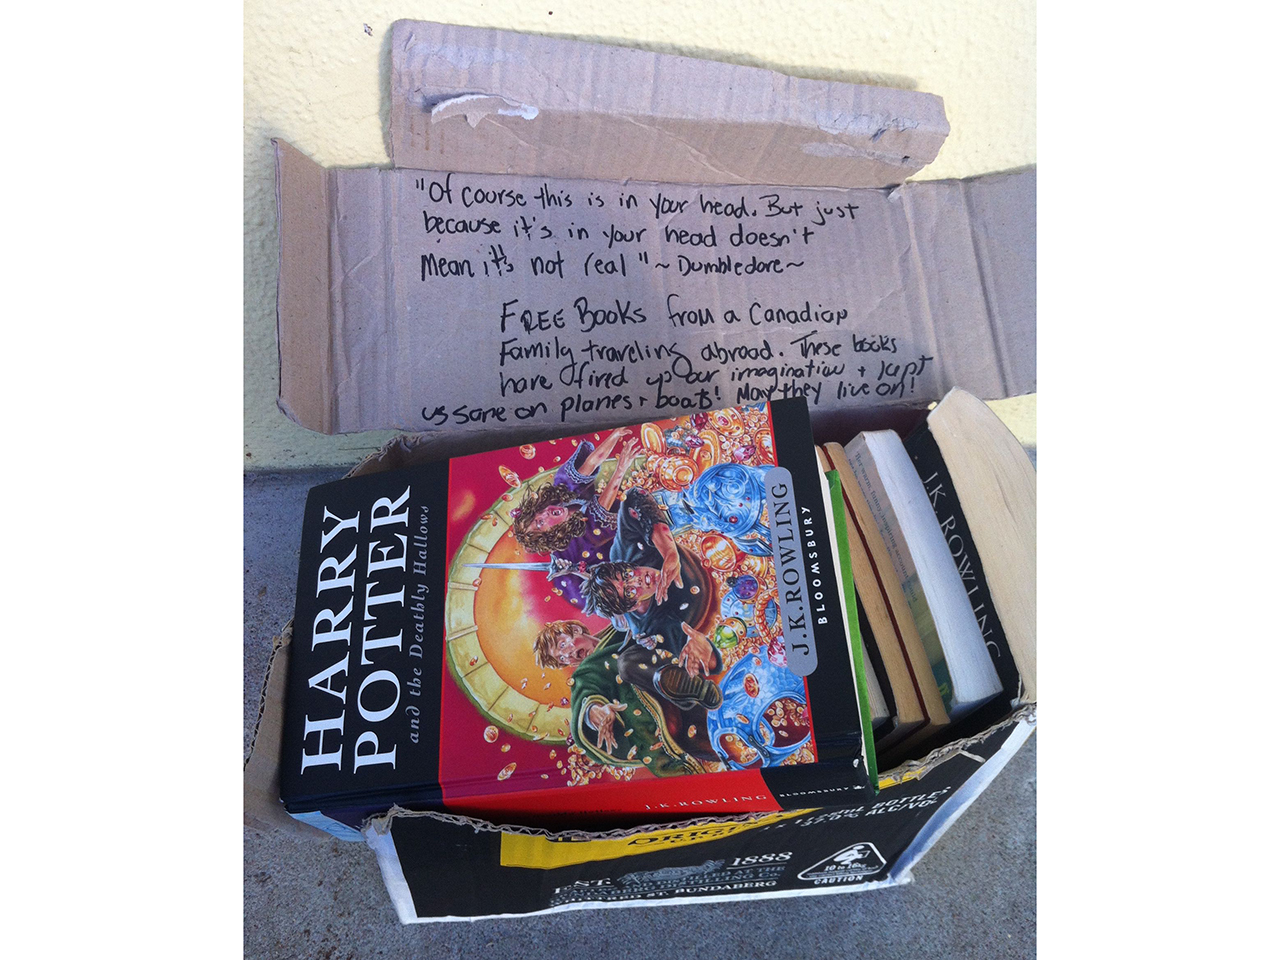 Box of Harry Potter books left behind with a note